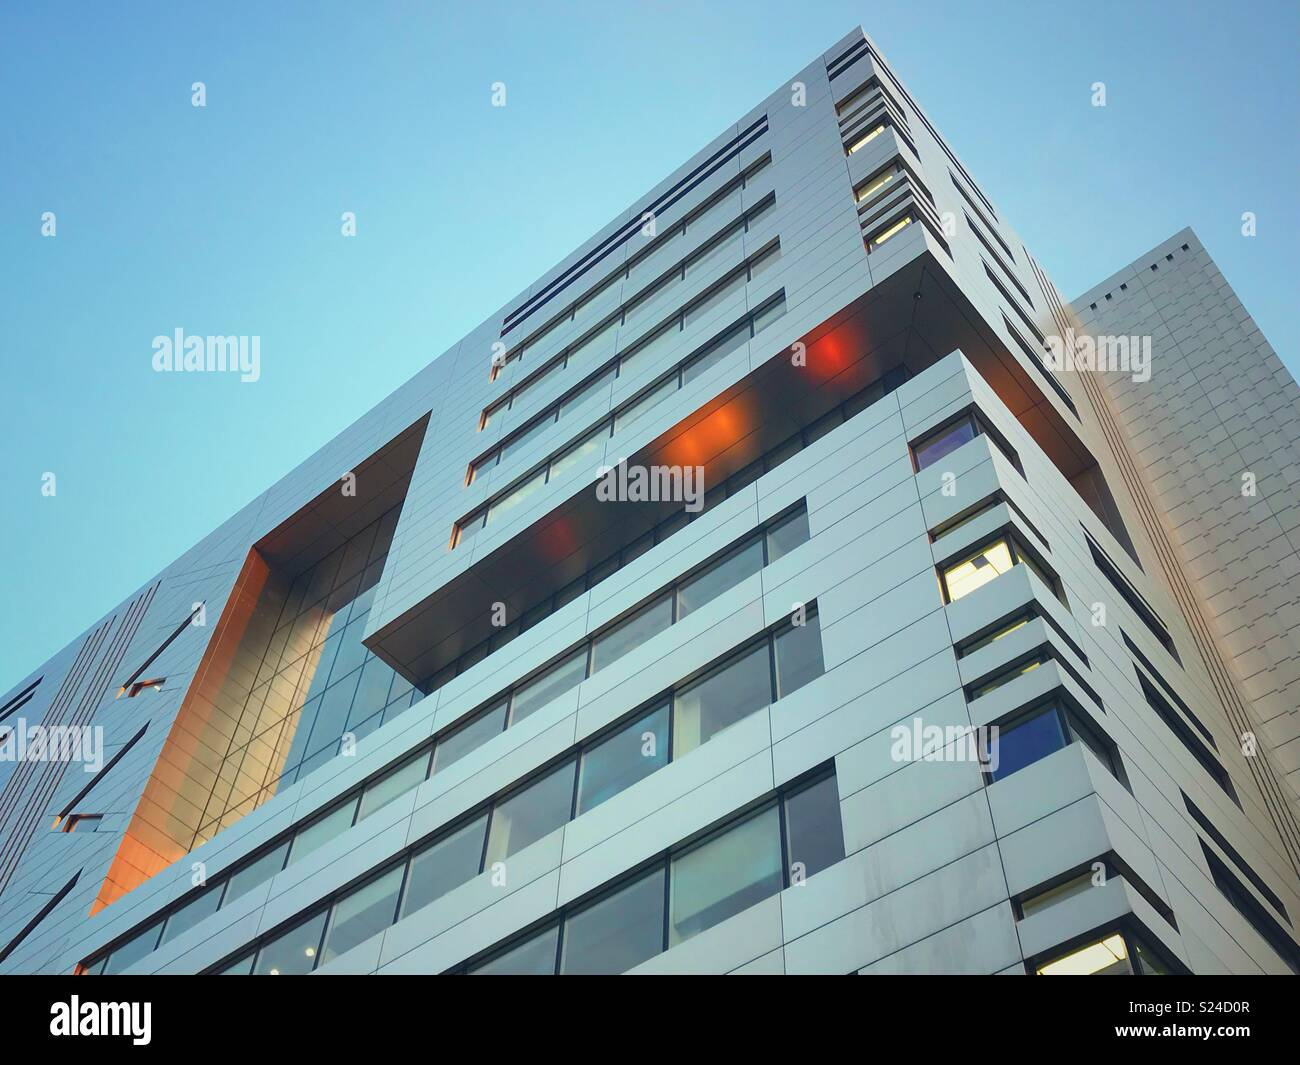 The USB building in Broadgate, City of London - Stock Image